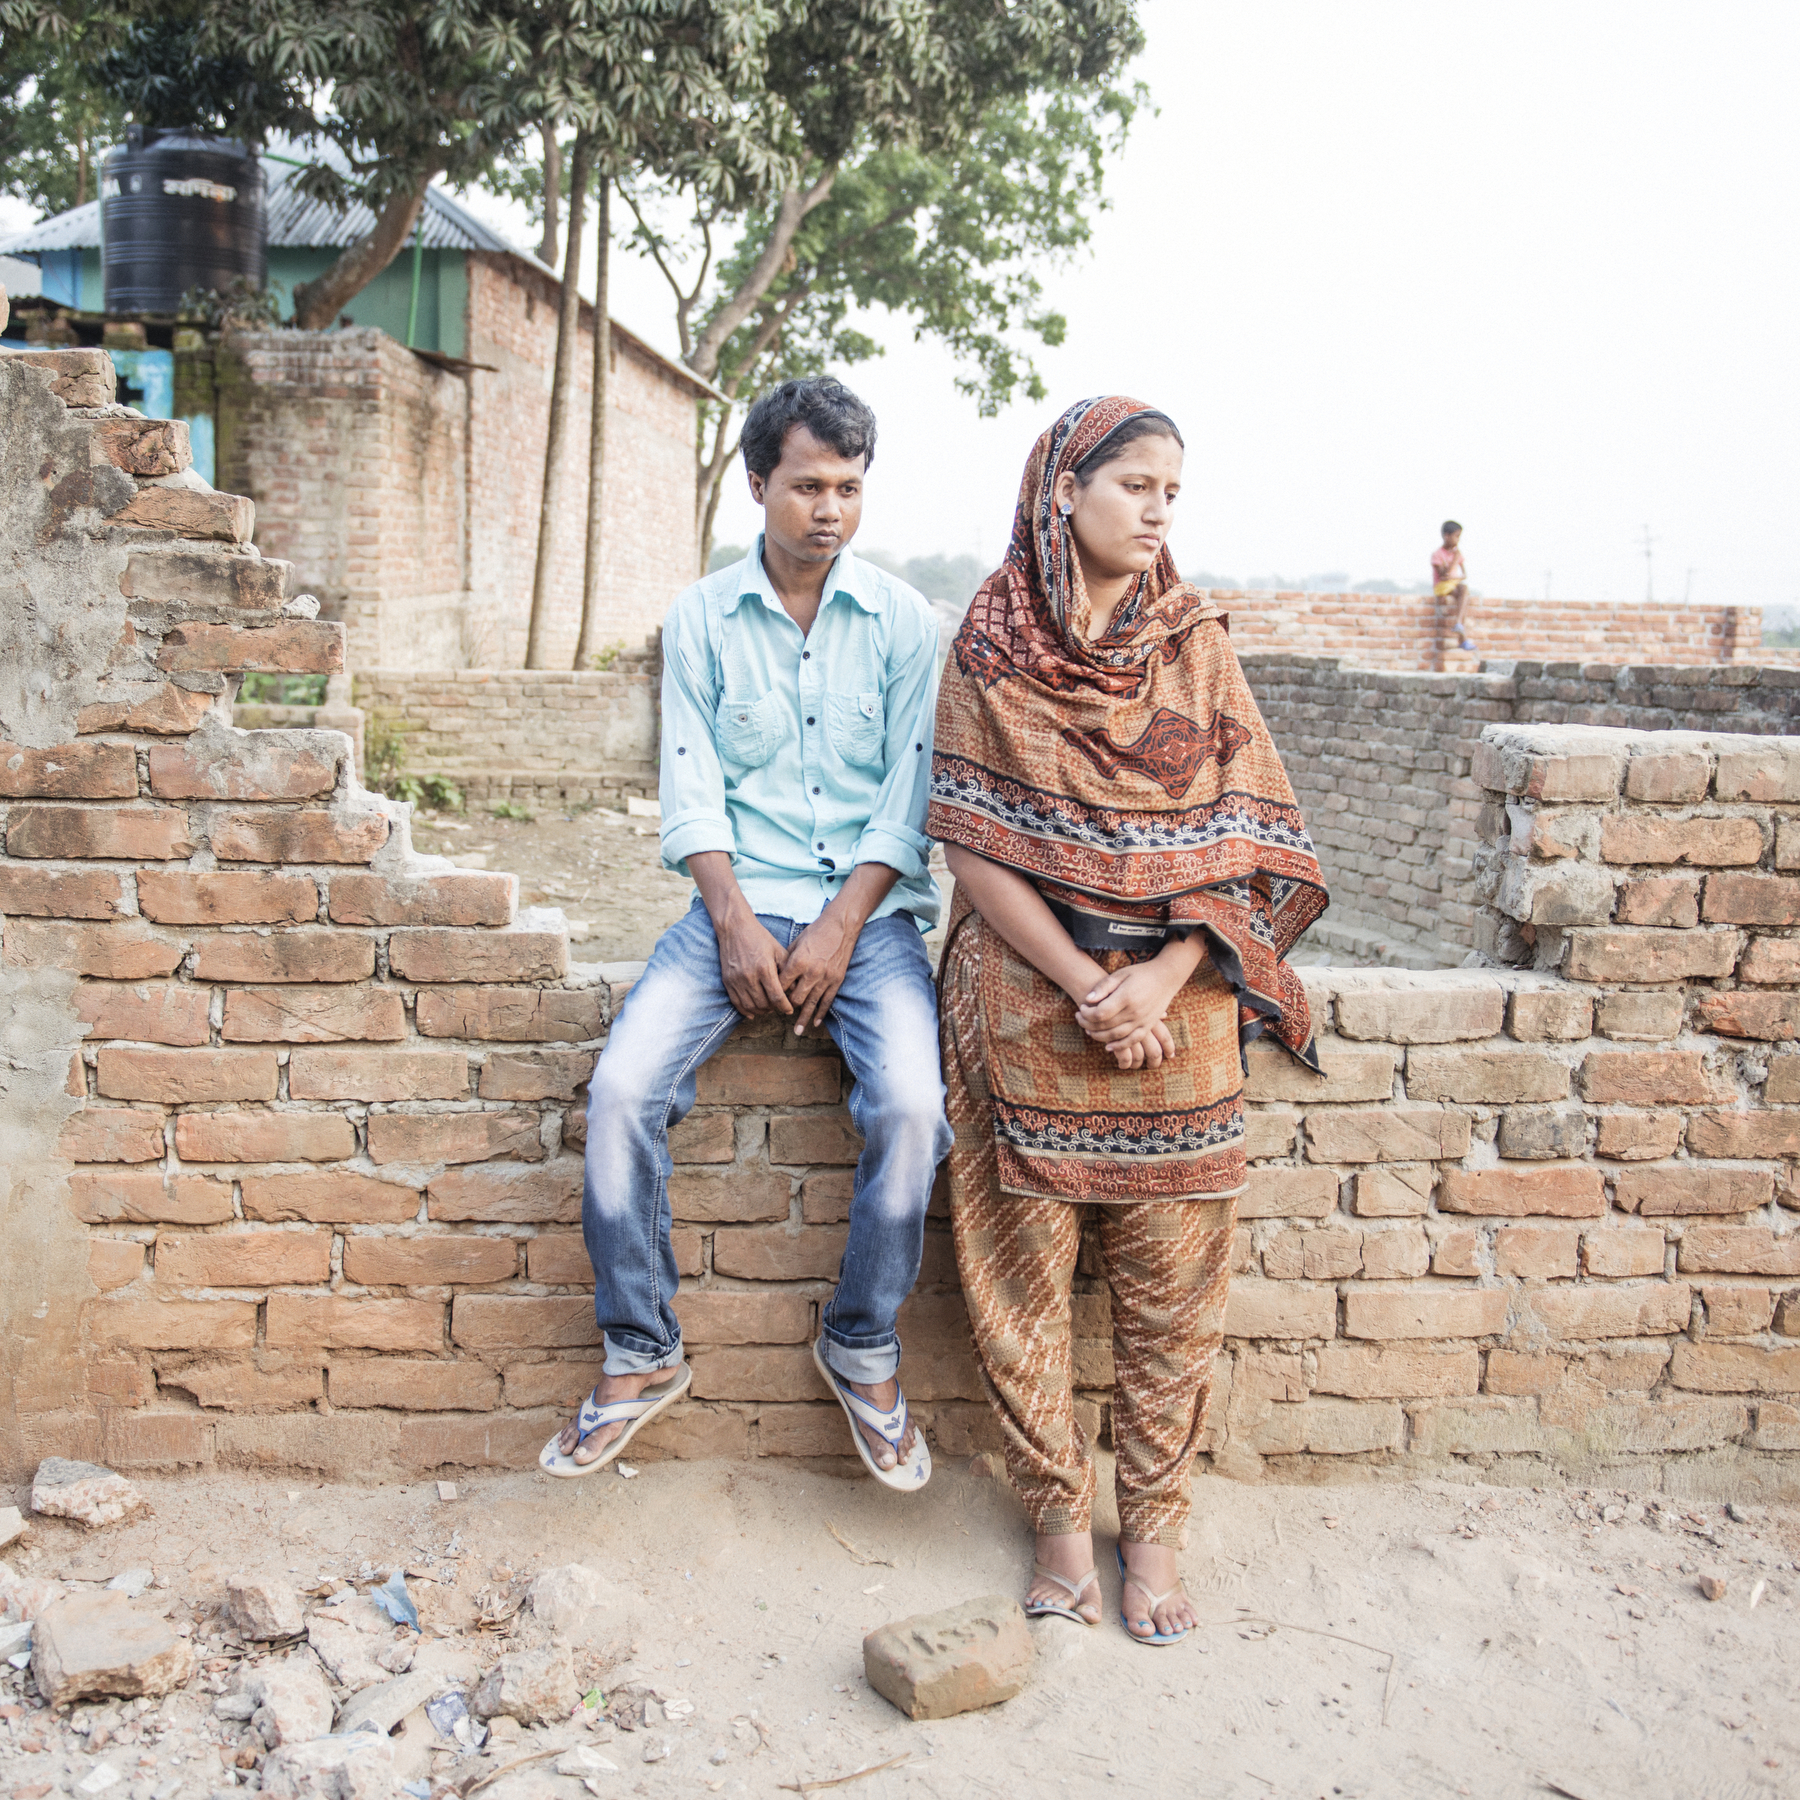 Mohammad Shahin, and his wife Mosammat Rani Akhter, struggling to make ends meet in Savar, contemplate moving to Jamalpur, their village home, outside of Dhaka.